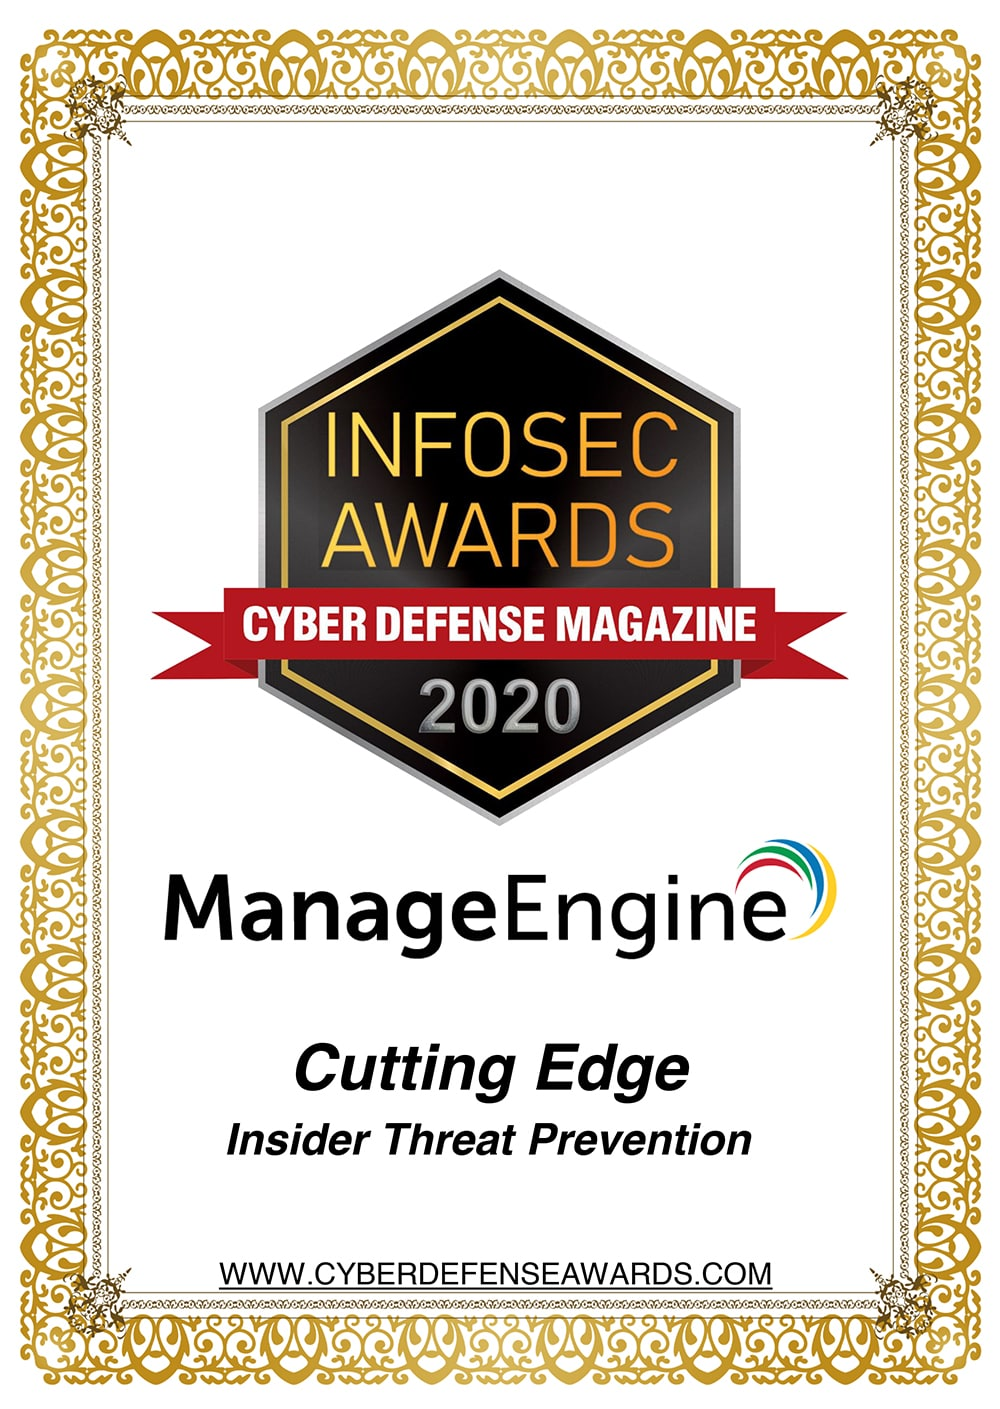 Infosec Awards 2020